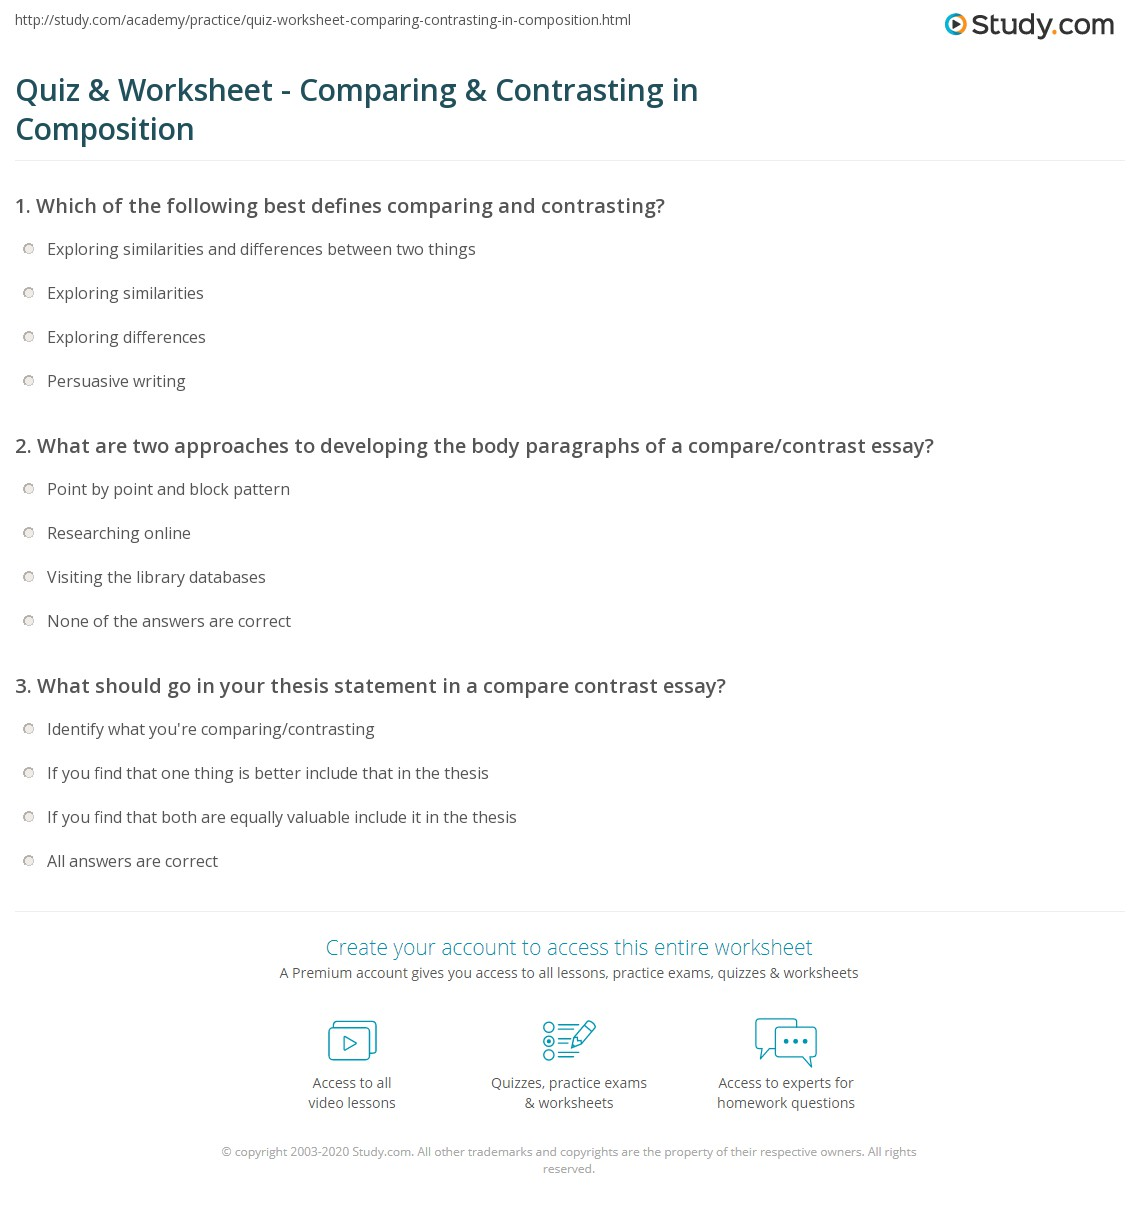 quiz worksheet comparing contrasting in composition com print comparing and contrasting examples concept worksheet